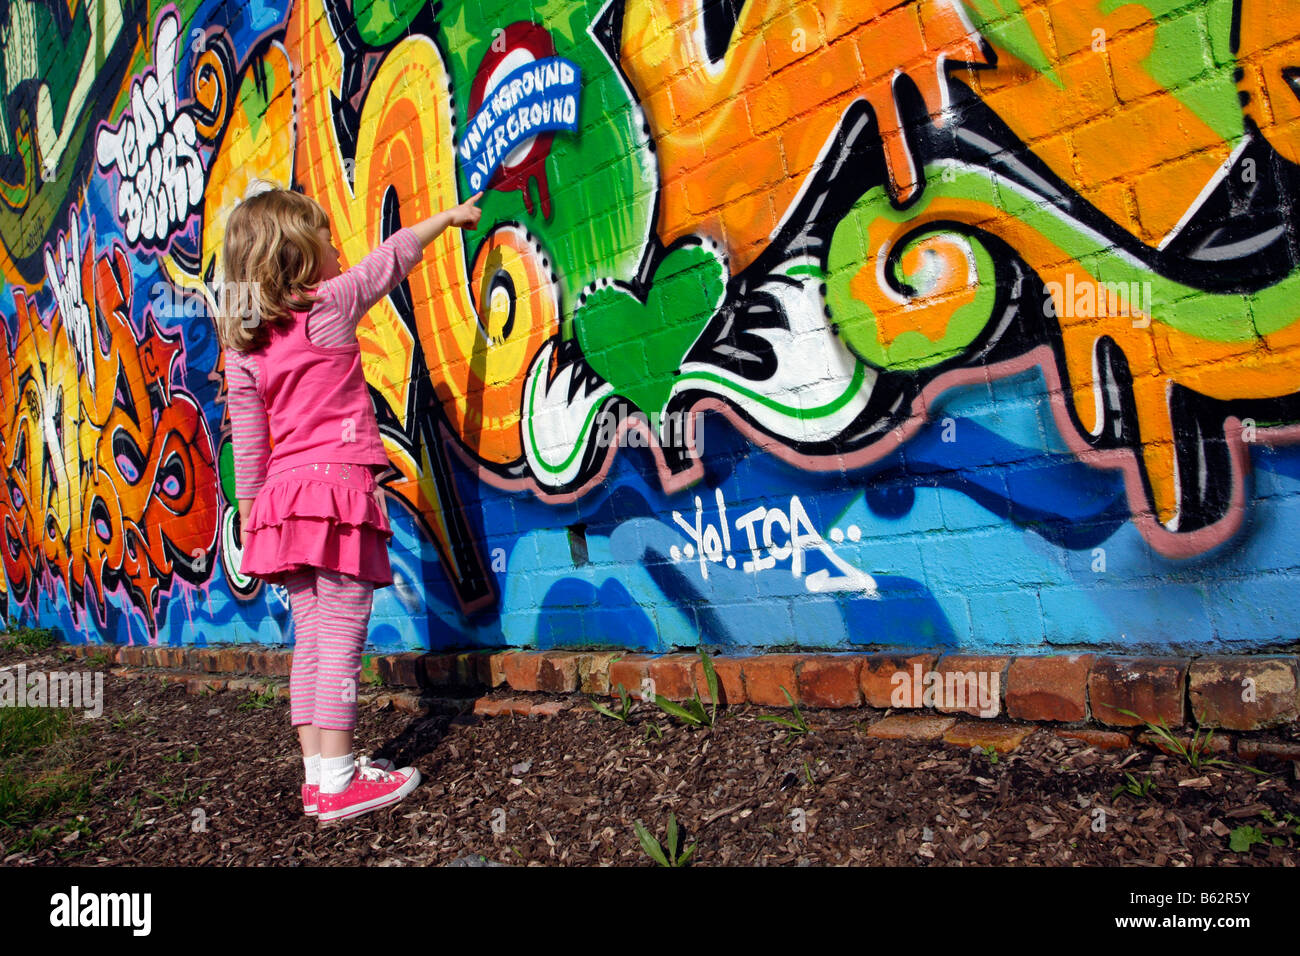 Graffiti wall painting - Girl Standing By And Pointing At A Graffiti Wall Wallart As Part Of A Community Project